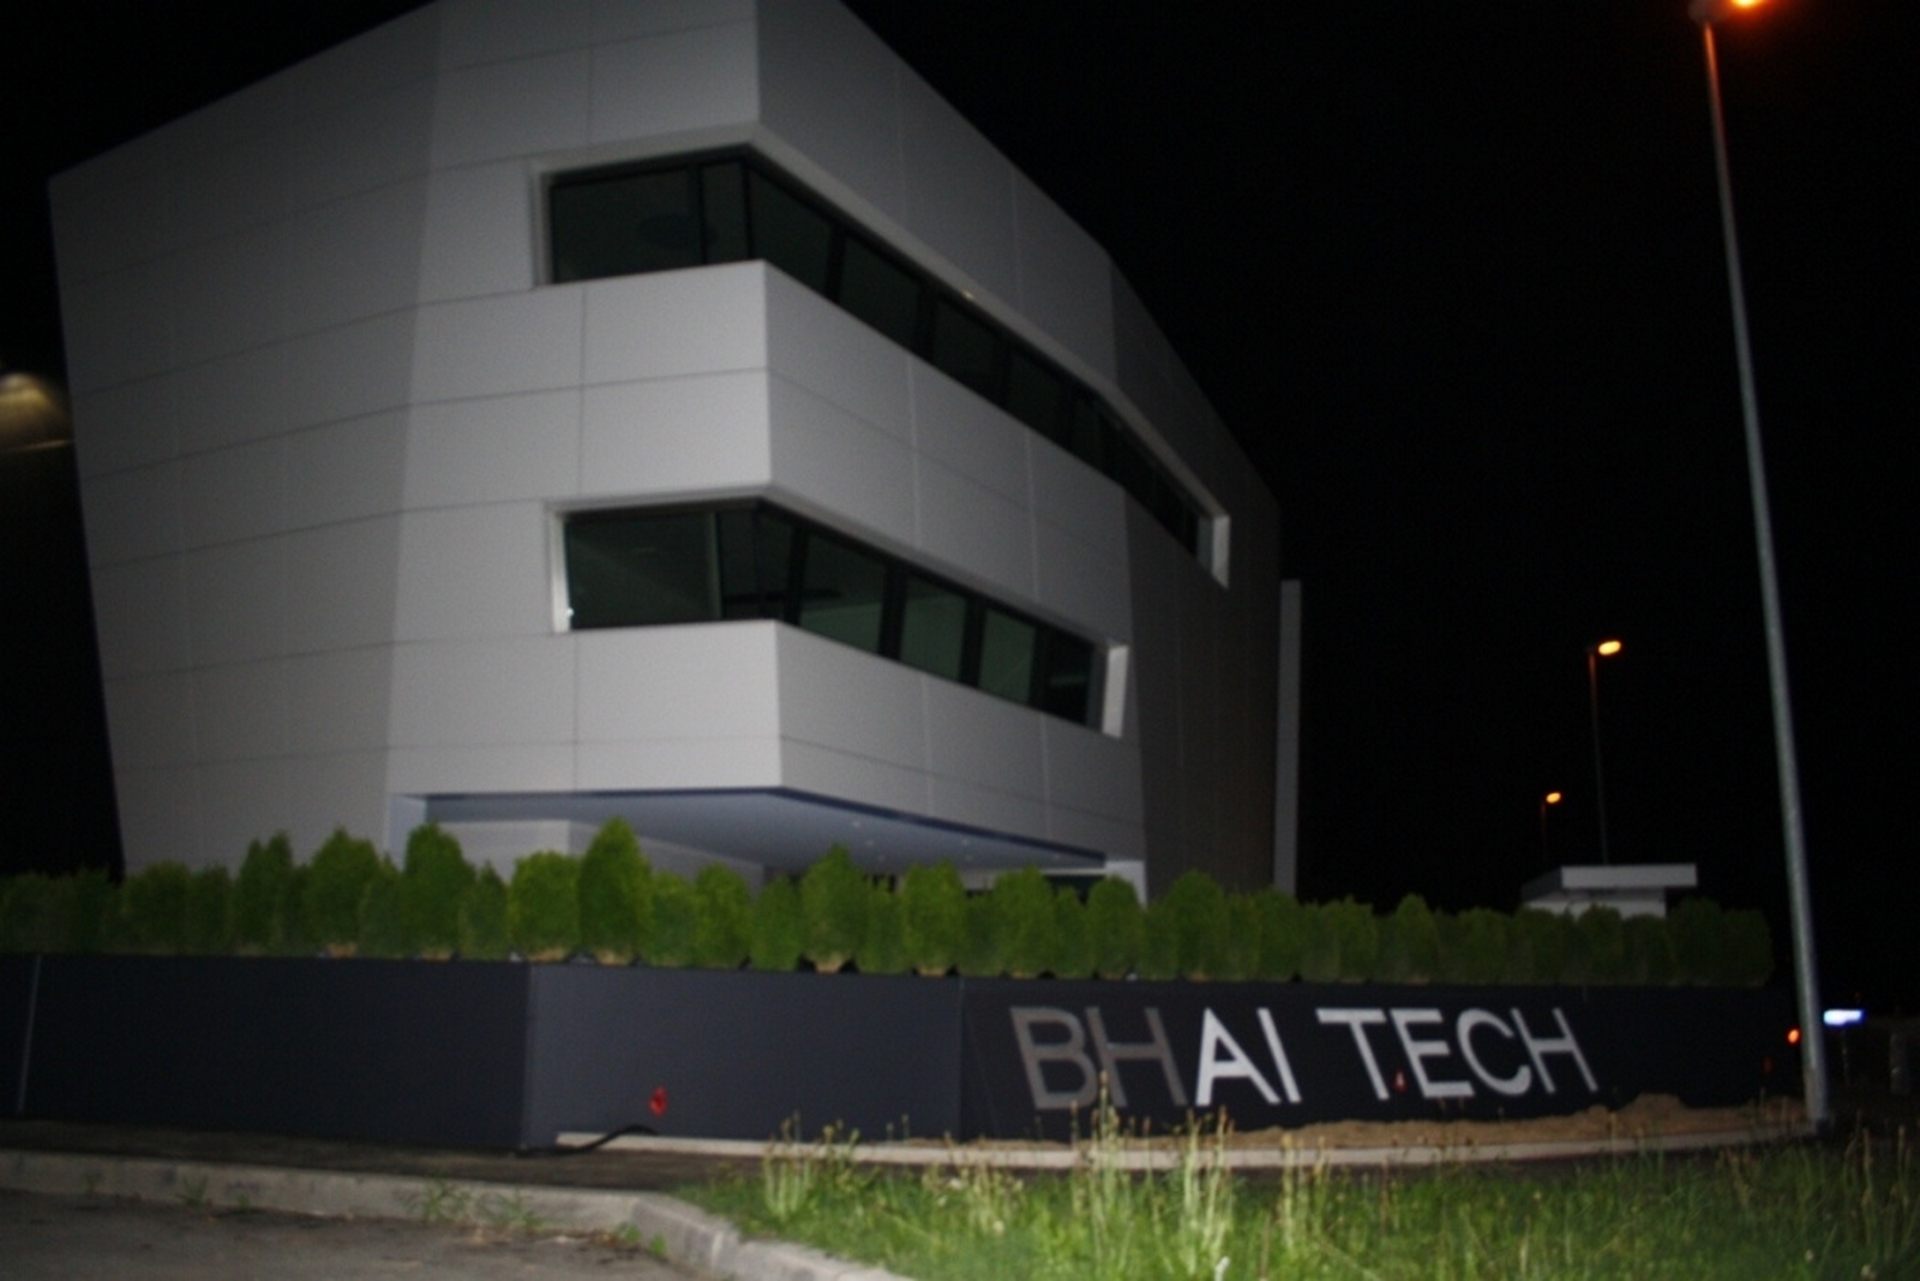 Bhai Tech Advanced Vehicle Science Centre